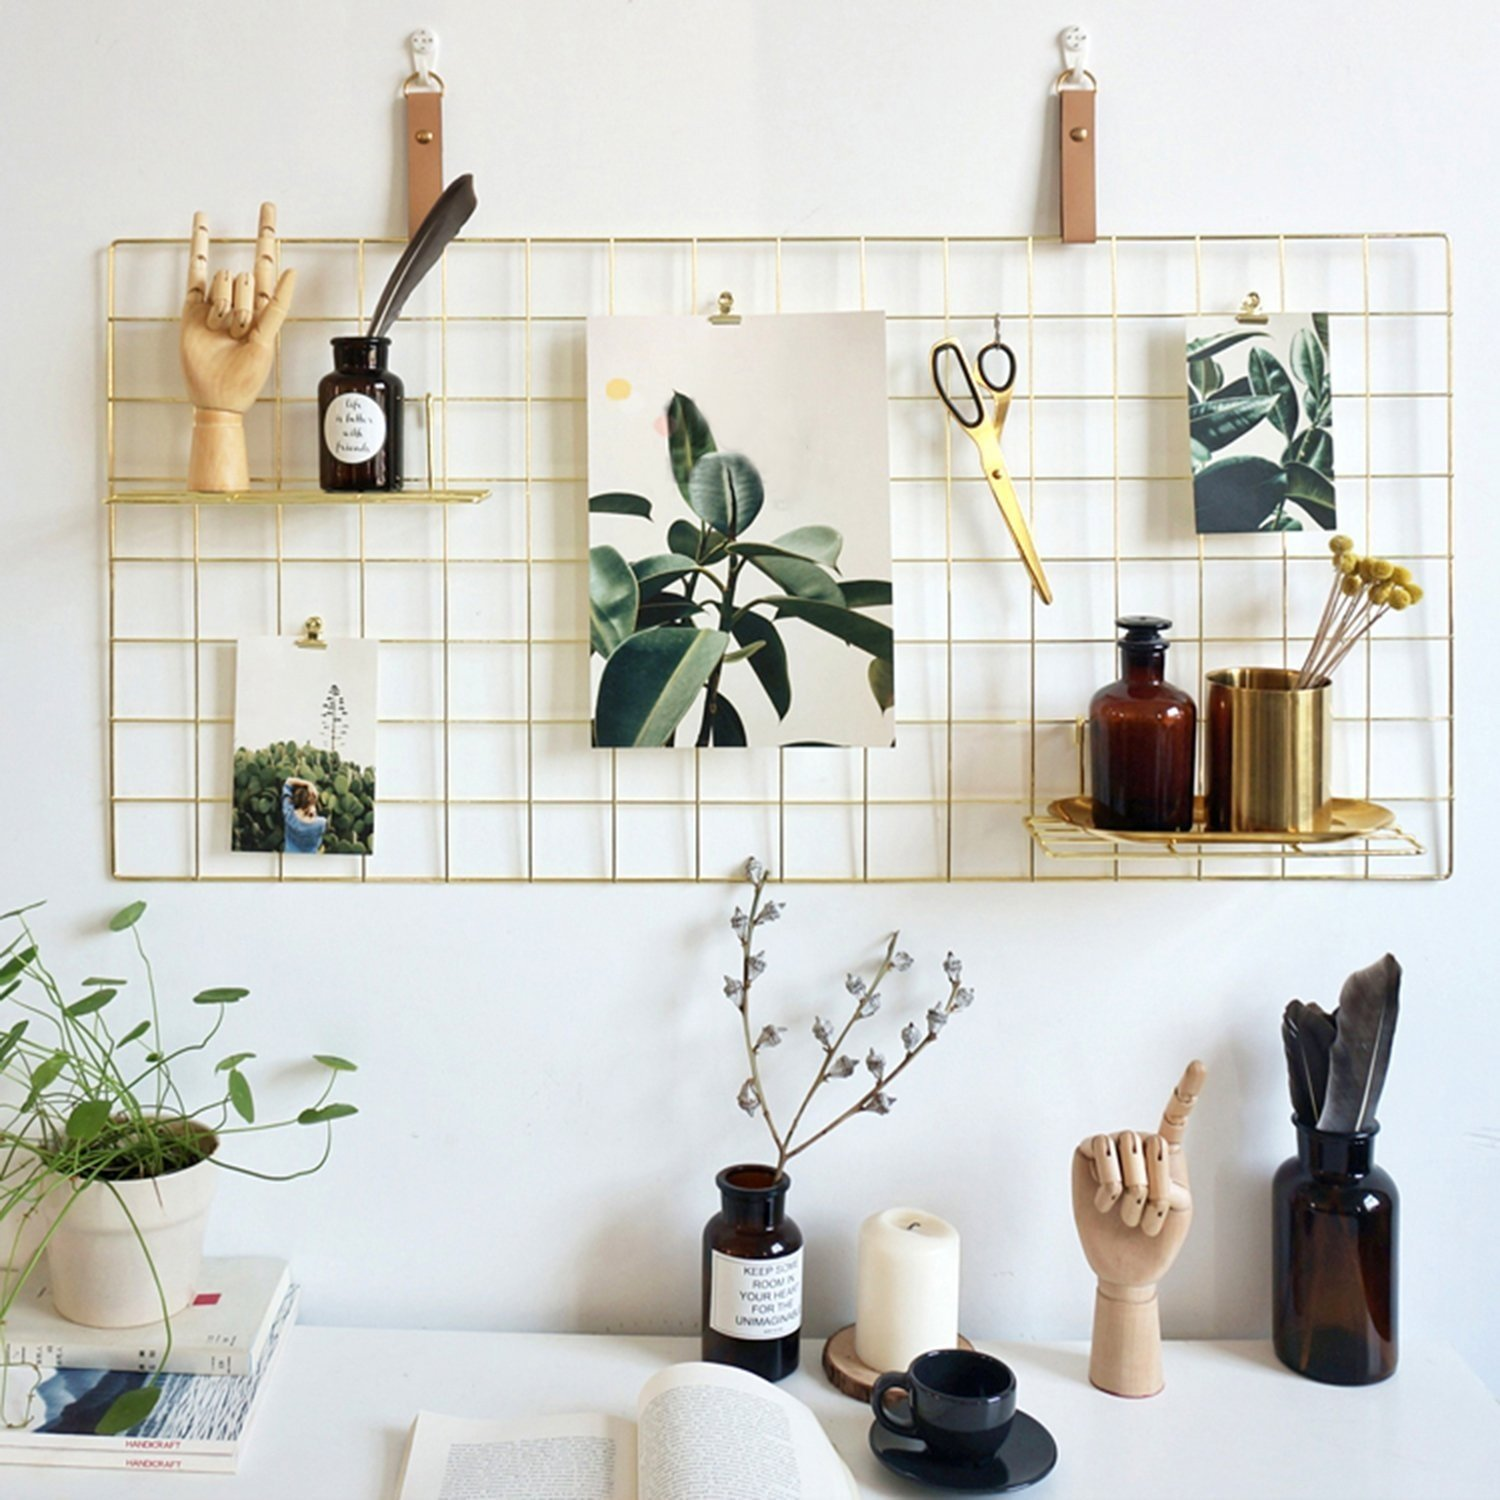 Rumcent Multifunction Metal Mesh Grid Panel,Wall Decor/Photo Wall/Wall Art Display & Organizer,Decorative Rack Clip Photograph Wall Hanging Picture wall,Size: 17.7